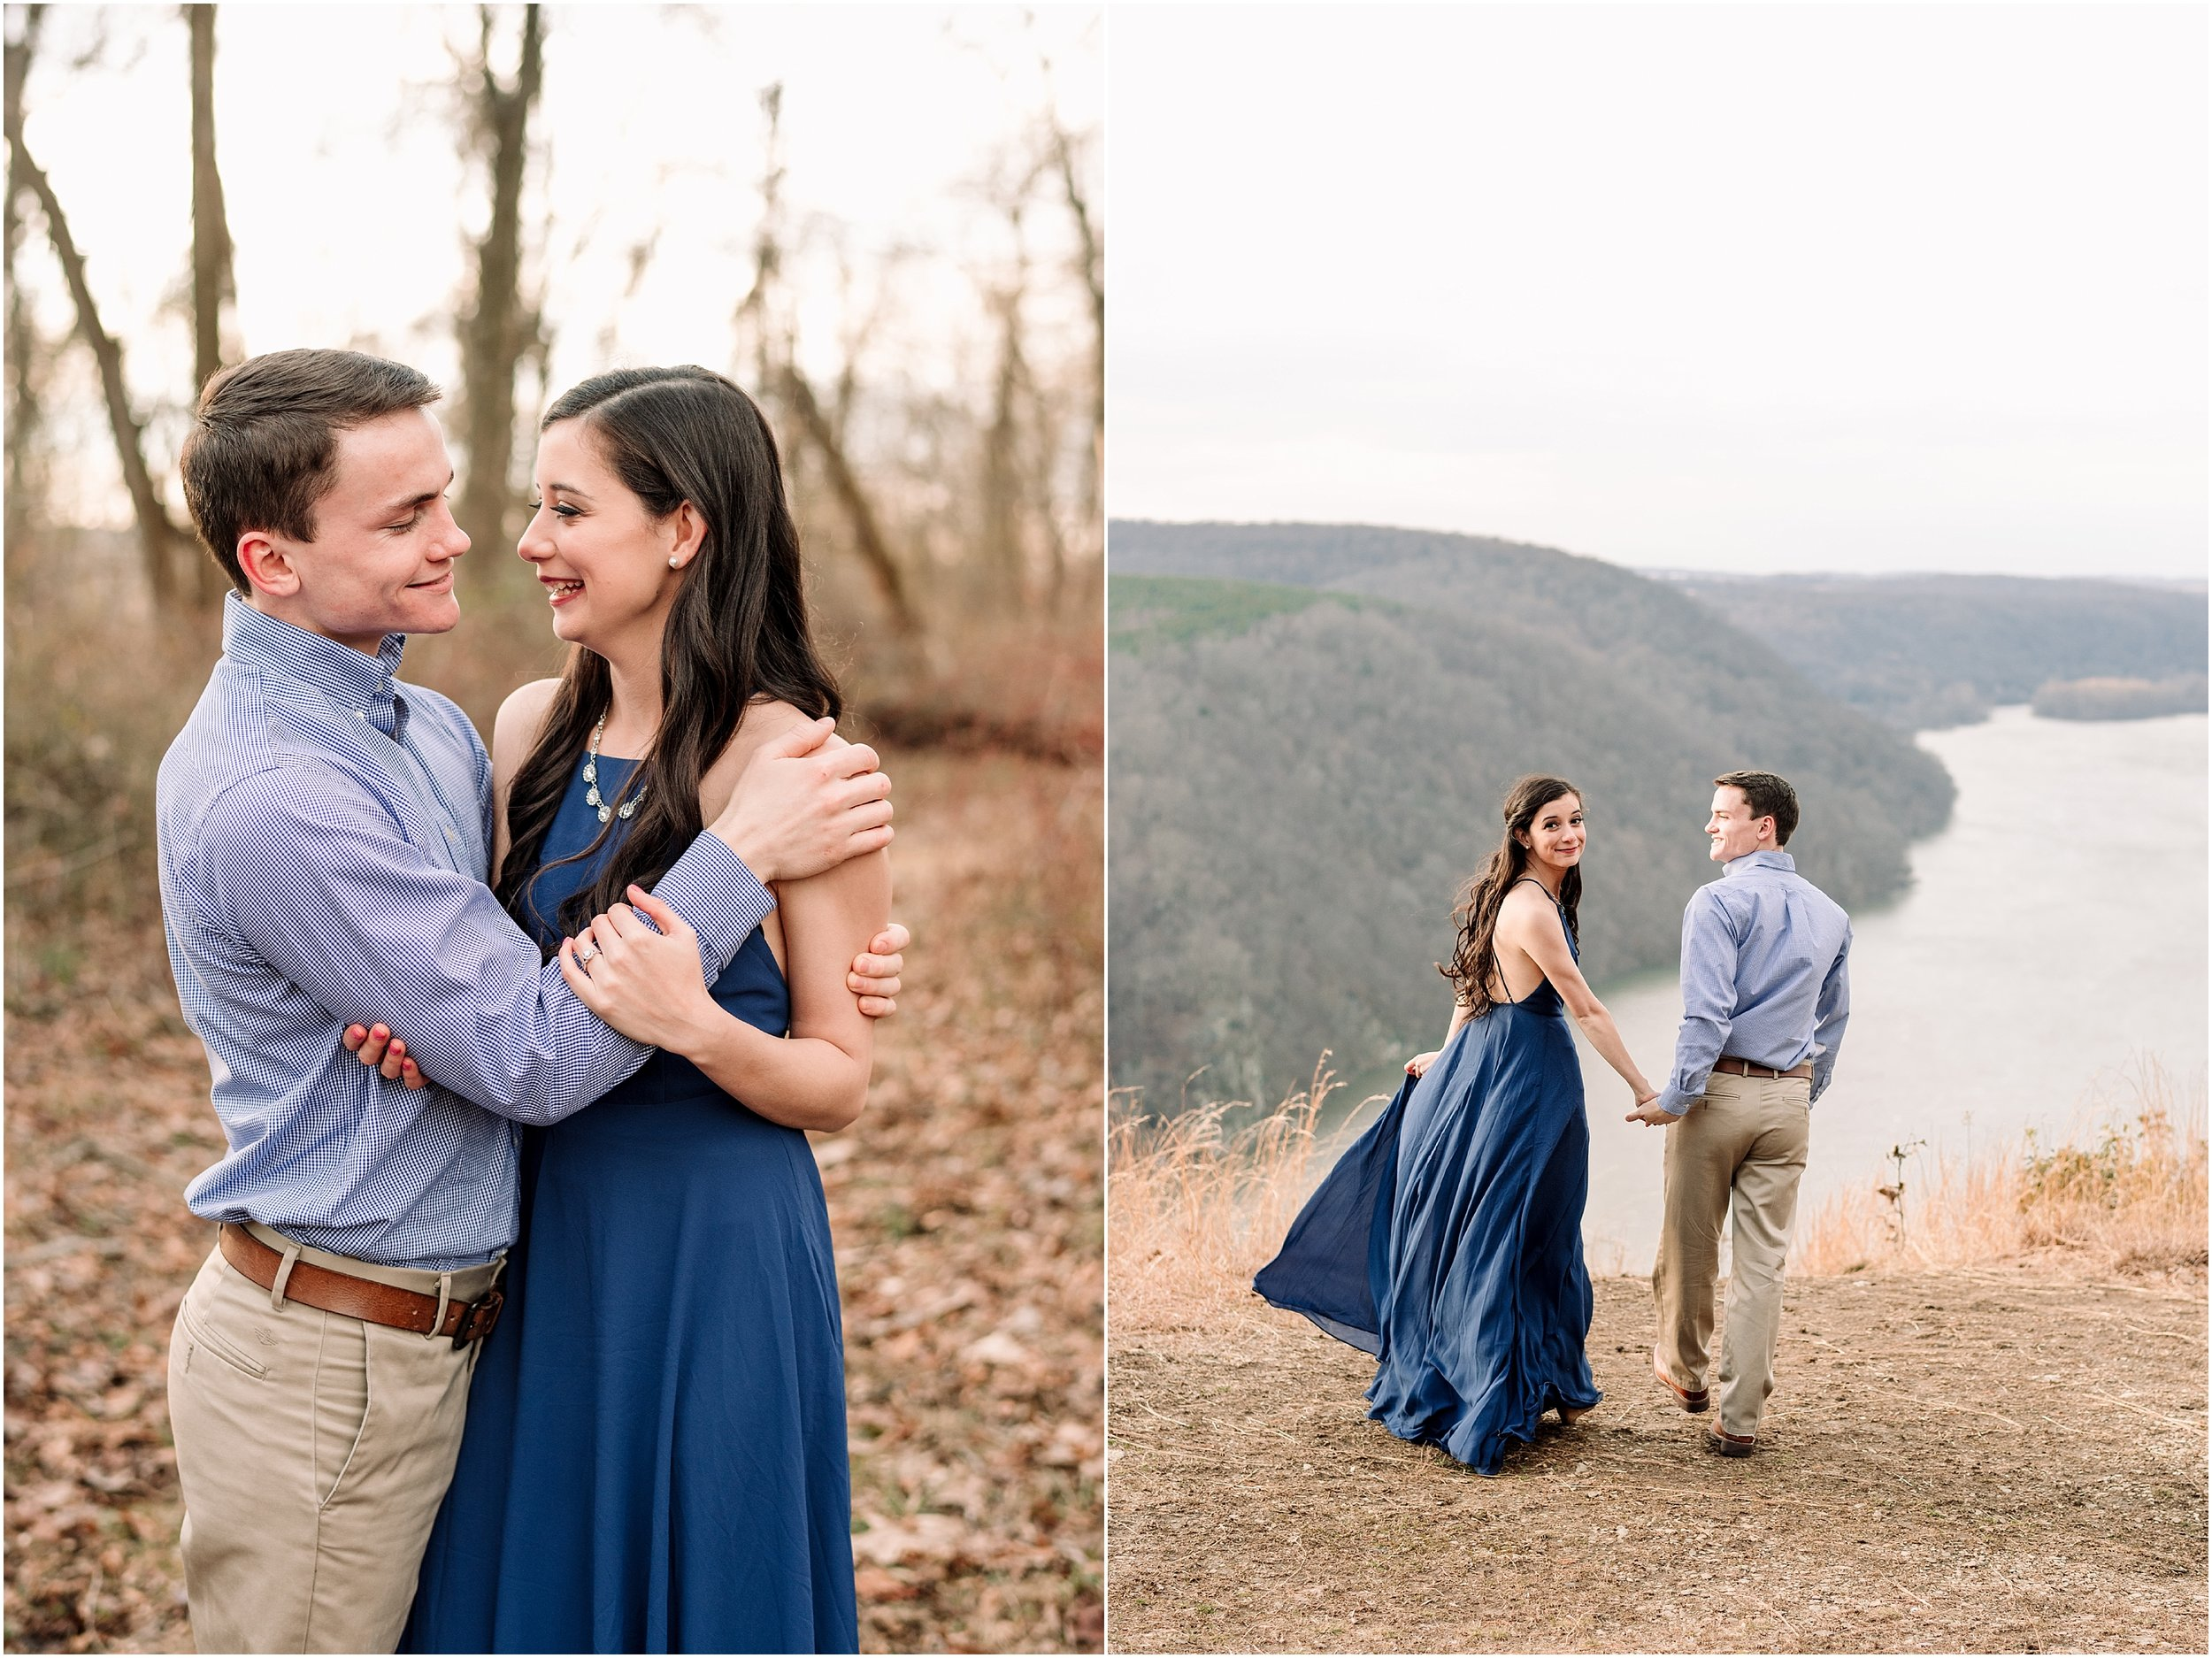 hannah leigh photography winter overlook engagement session lancaster PA_2635.jpg